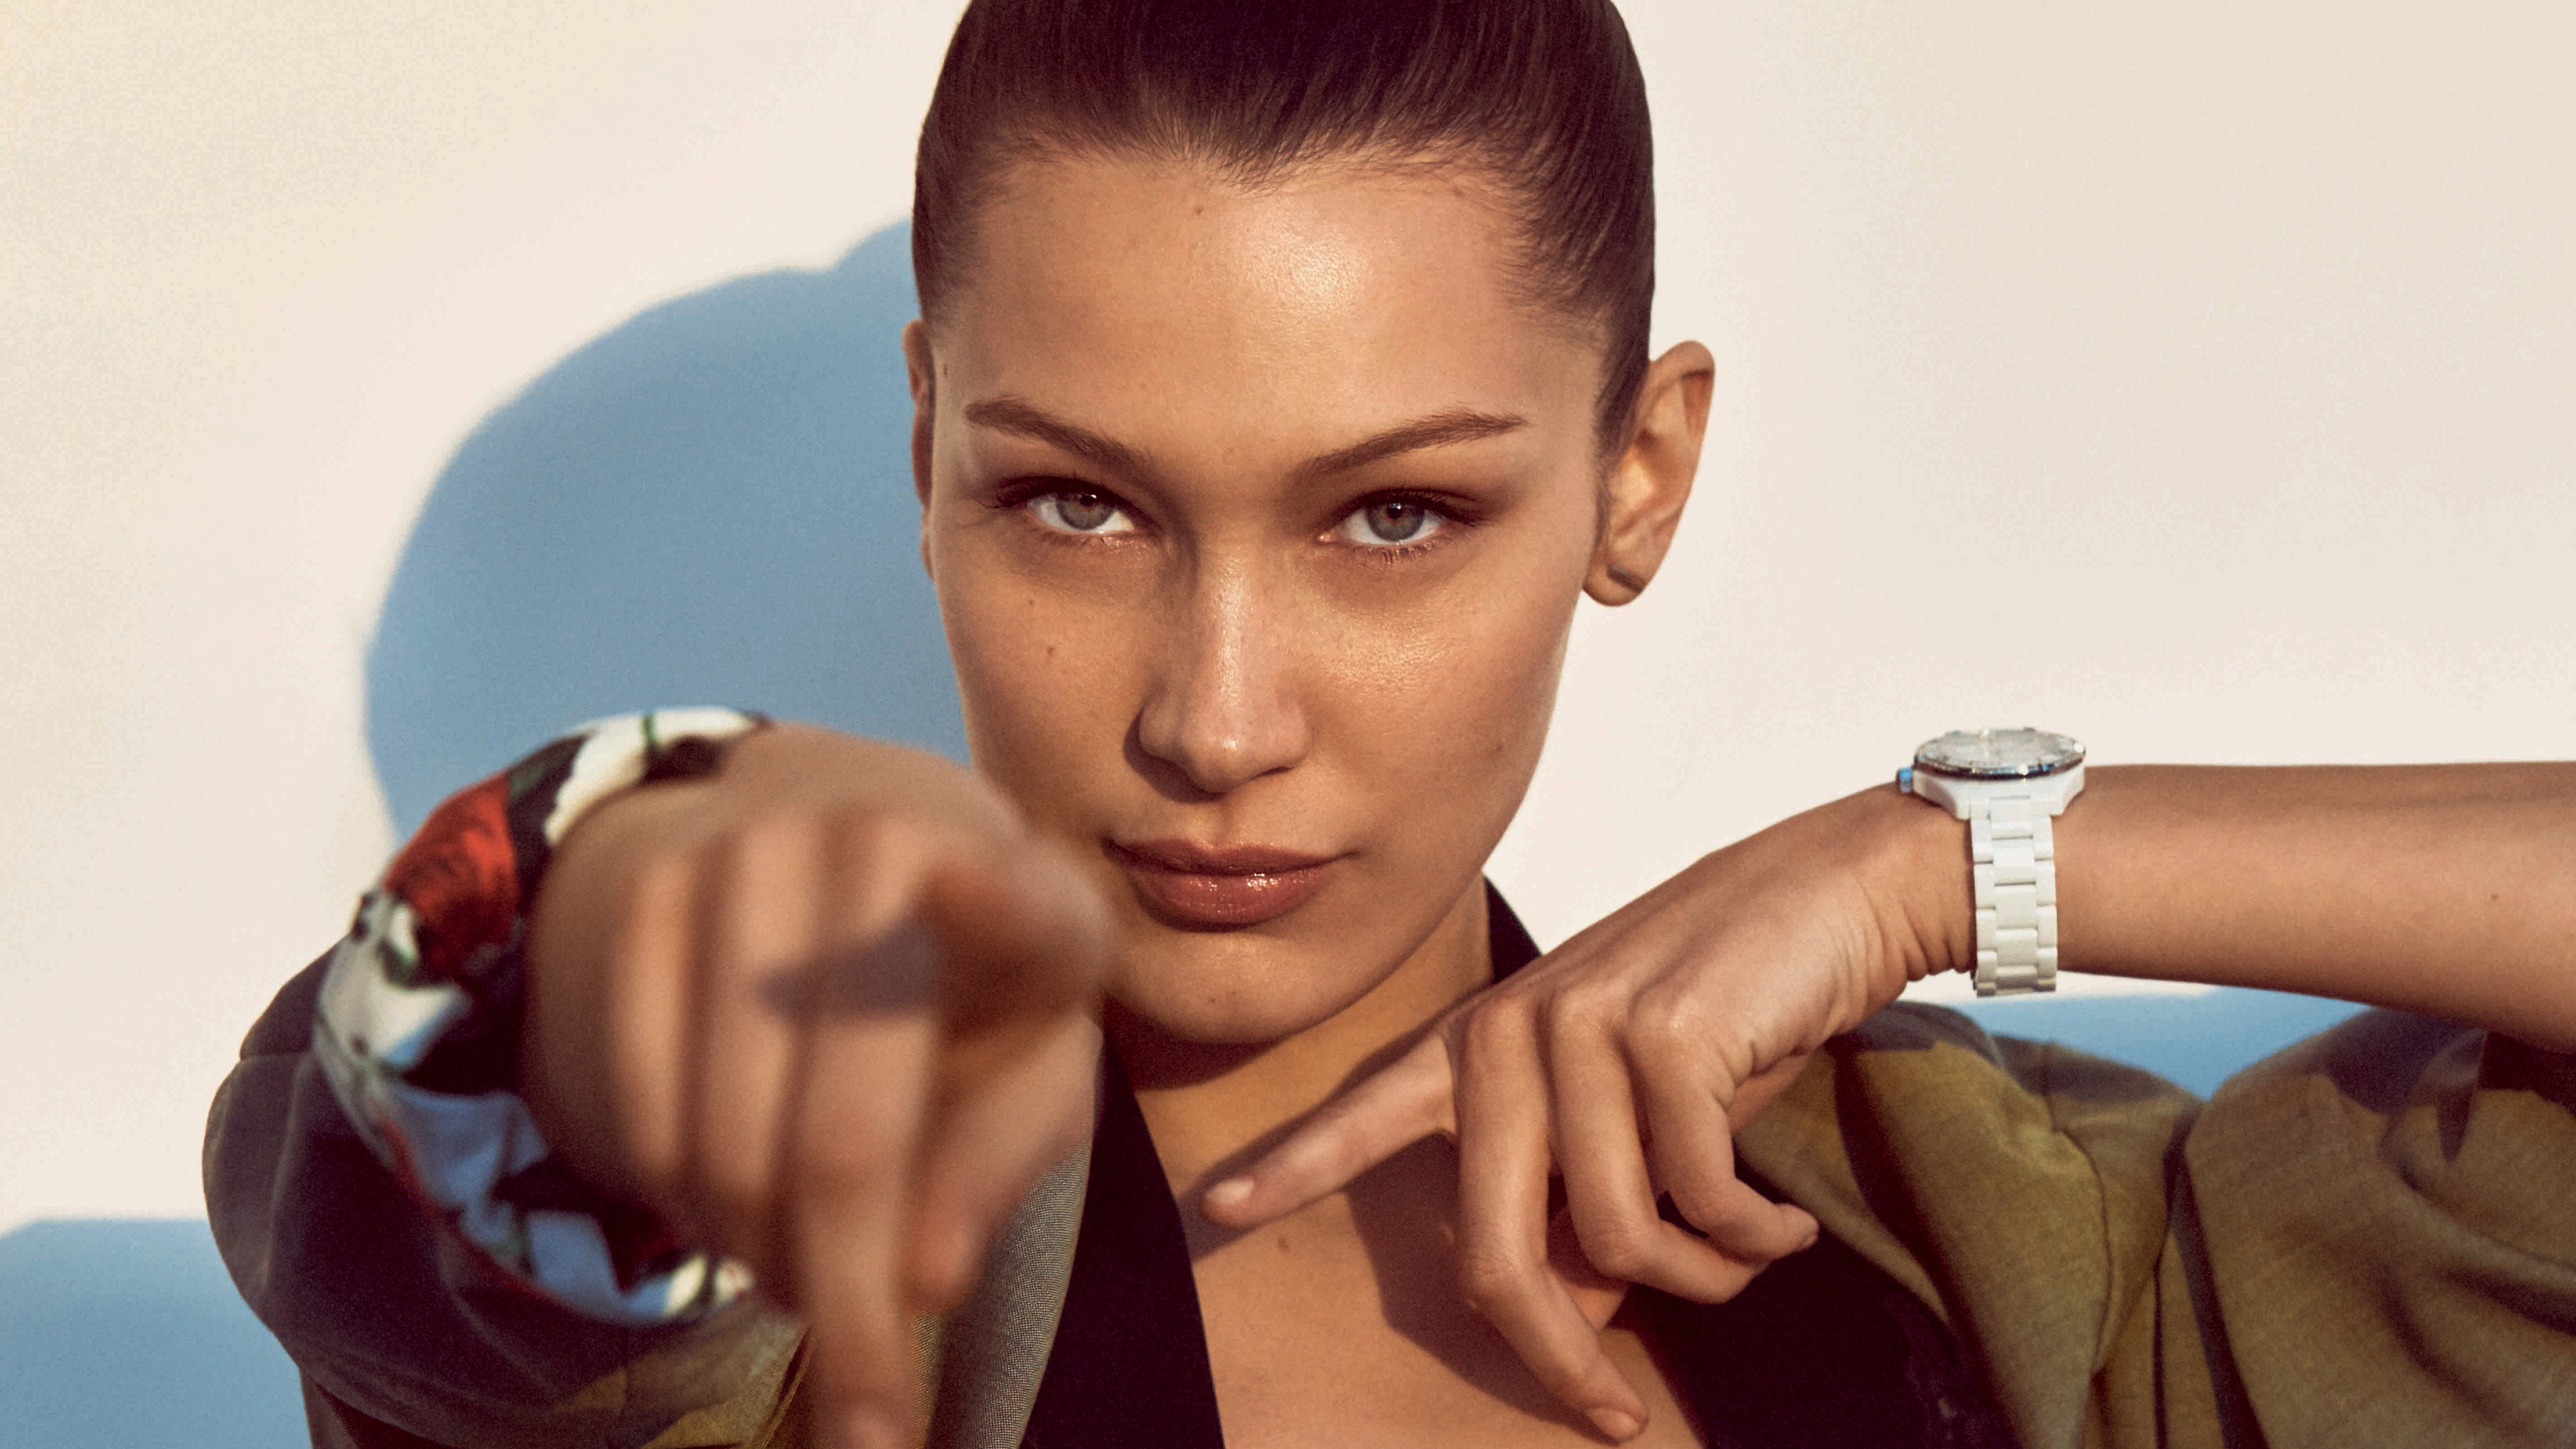 bella hadid 5k 1536861533 - Bella Hadid 5k - hd-wallpapers, girls wallpapers, celebrities wallpapers, bella hadid wallpapers, 5k wallpapers, 4k-wallpapers